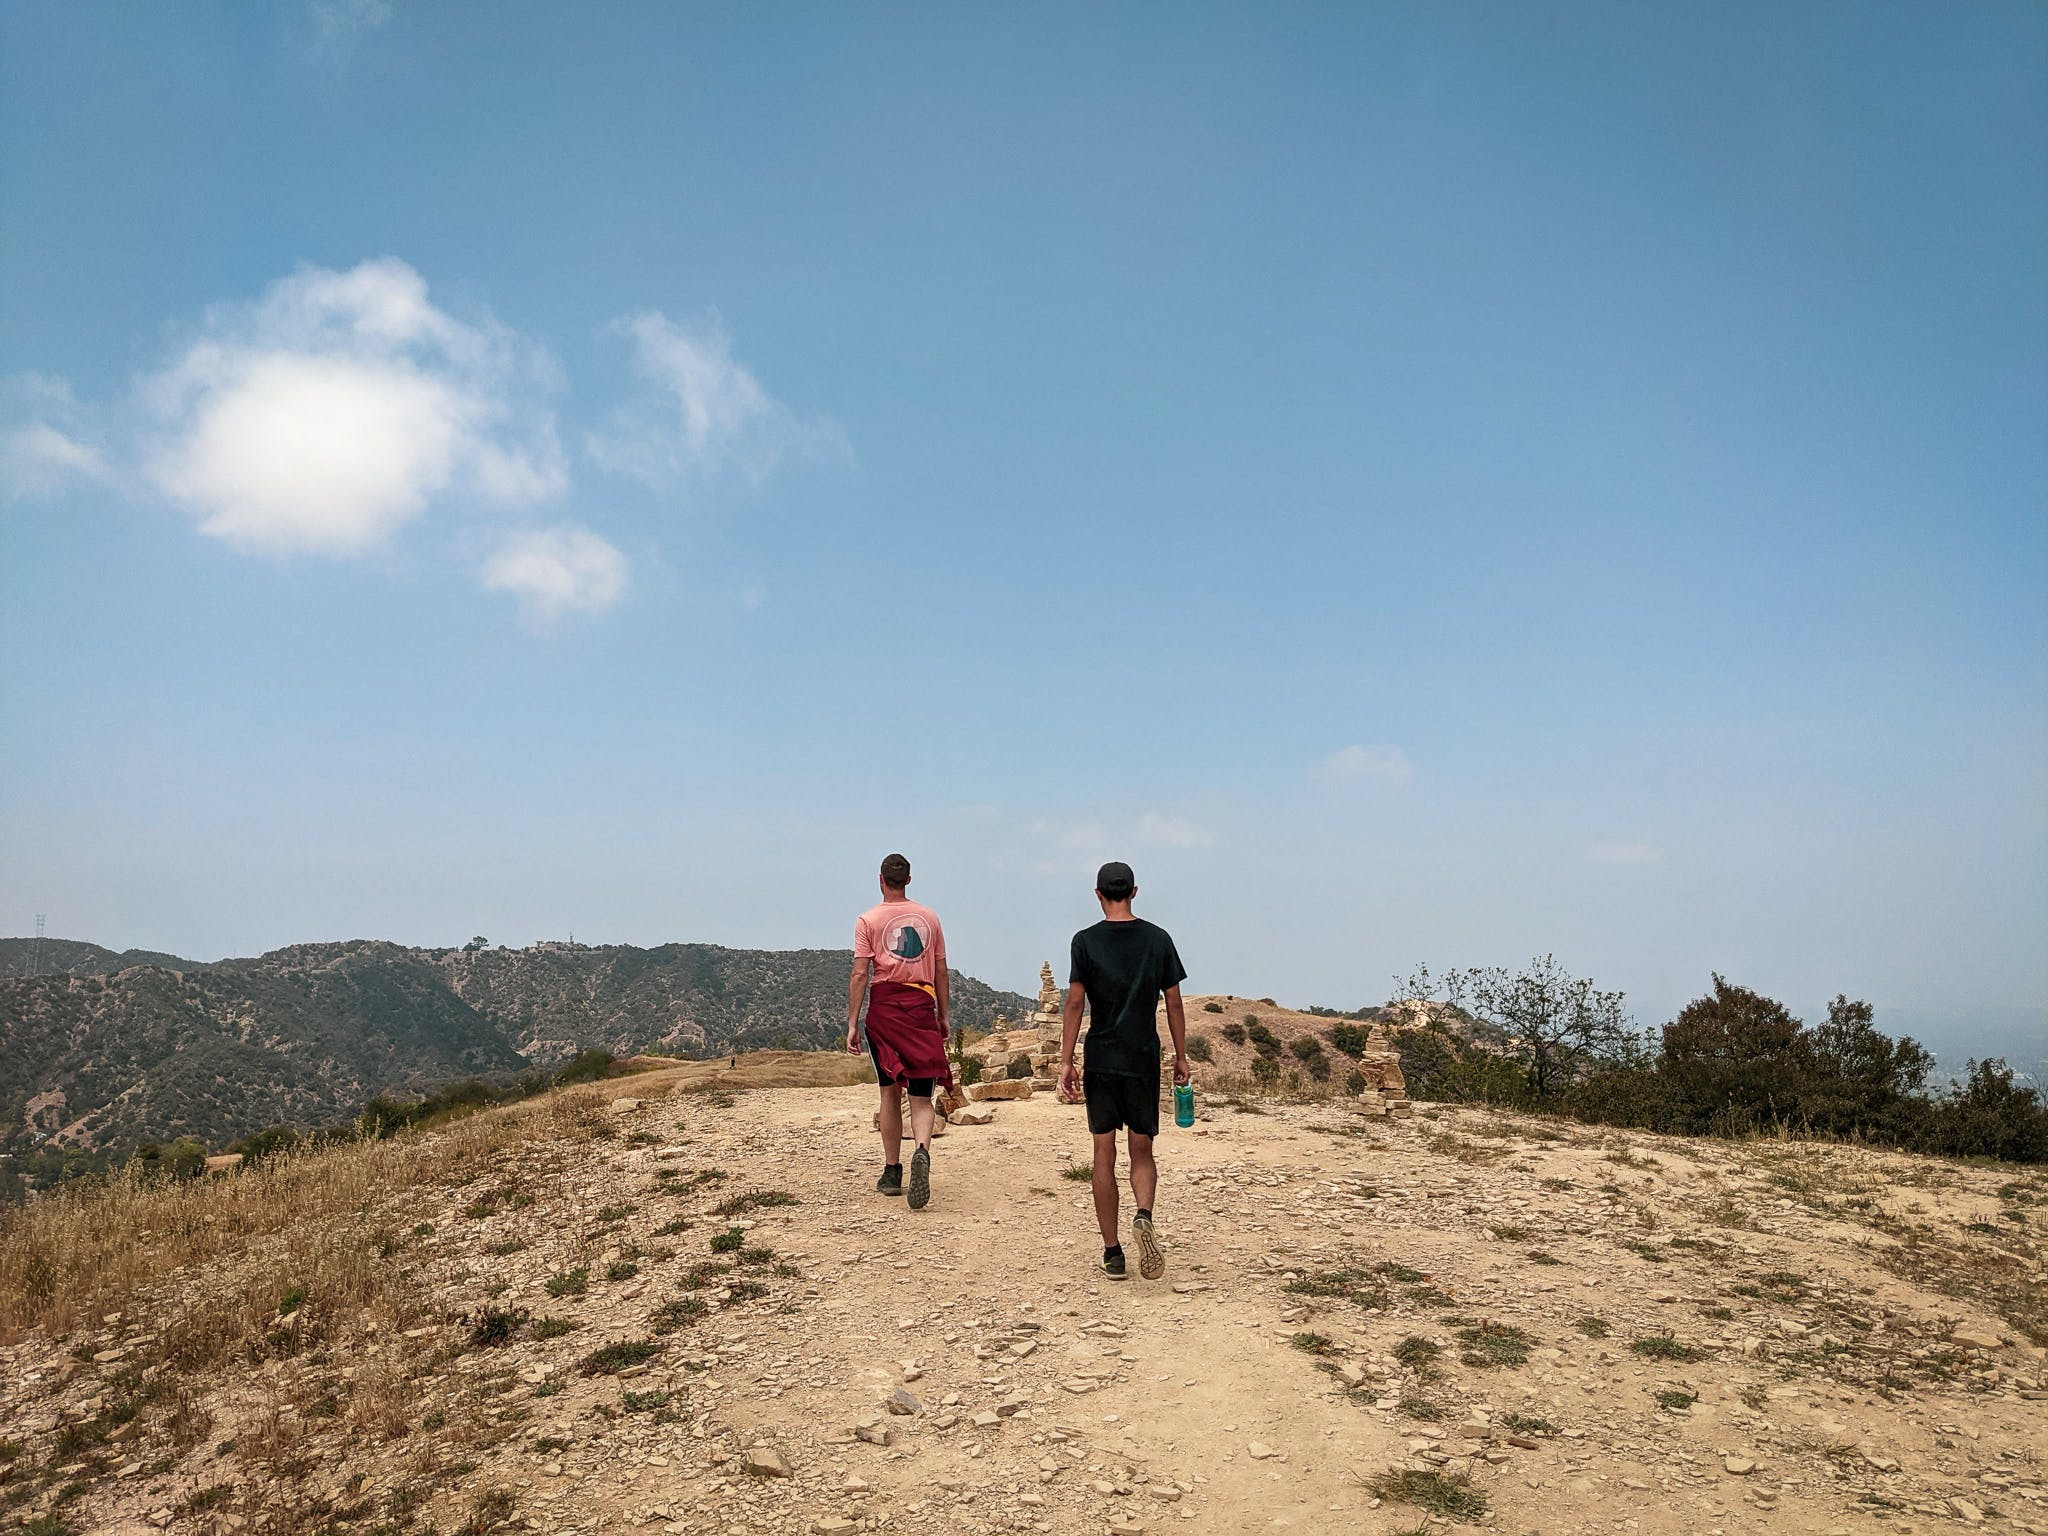 Two hikers coming to the crest of a trail at Upper and Lower Canyonback Trails in Los Angeles county